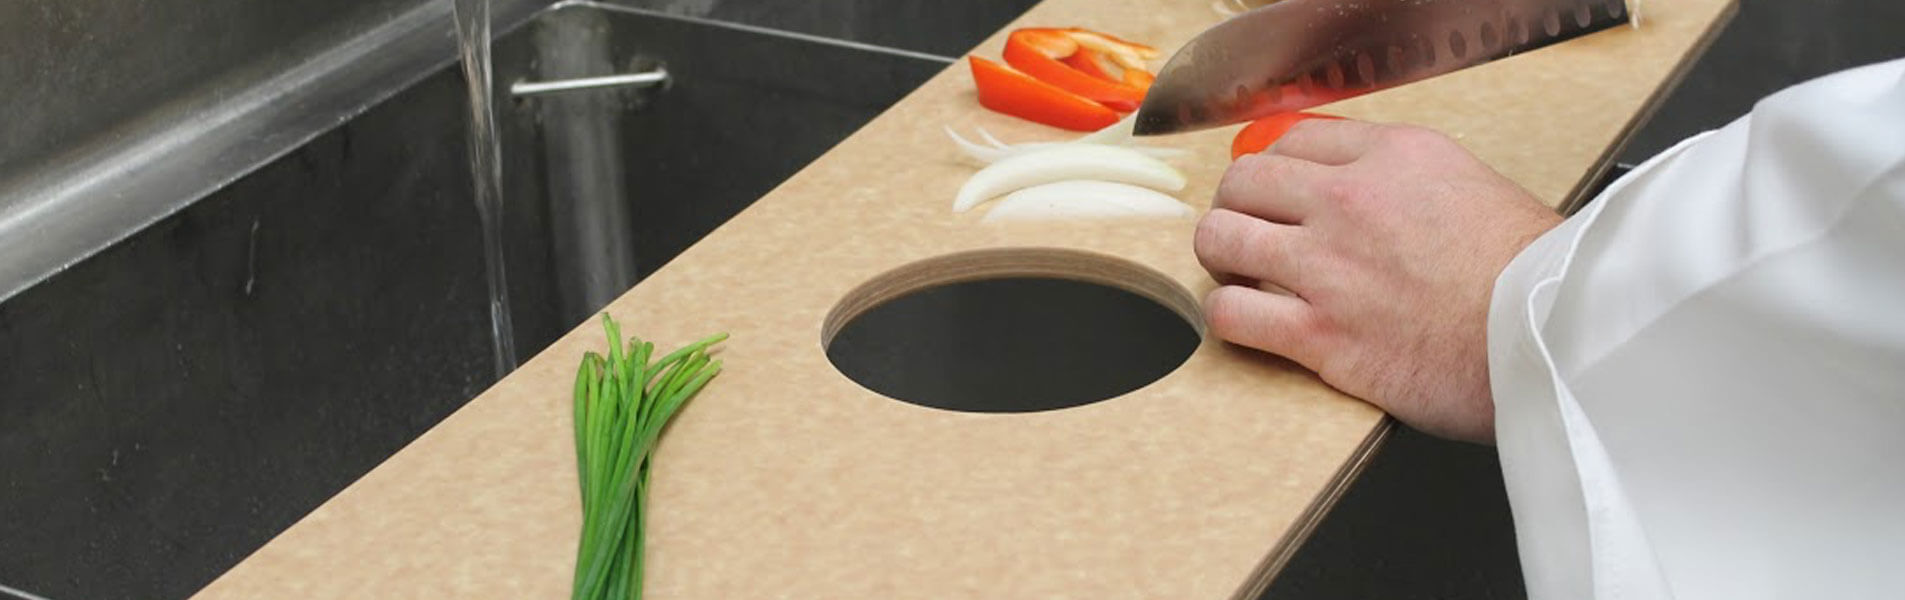 cutting board, richlite cutting board, cutting board company